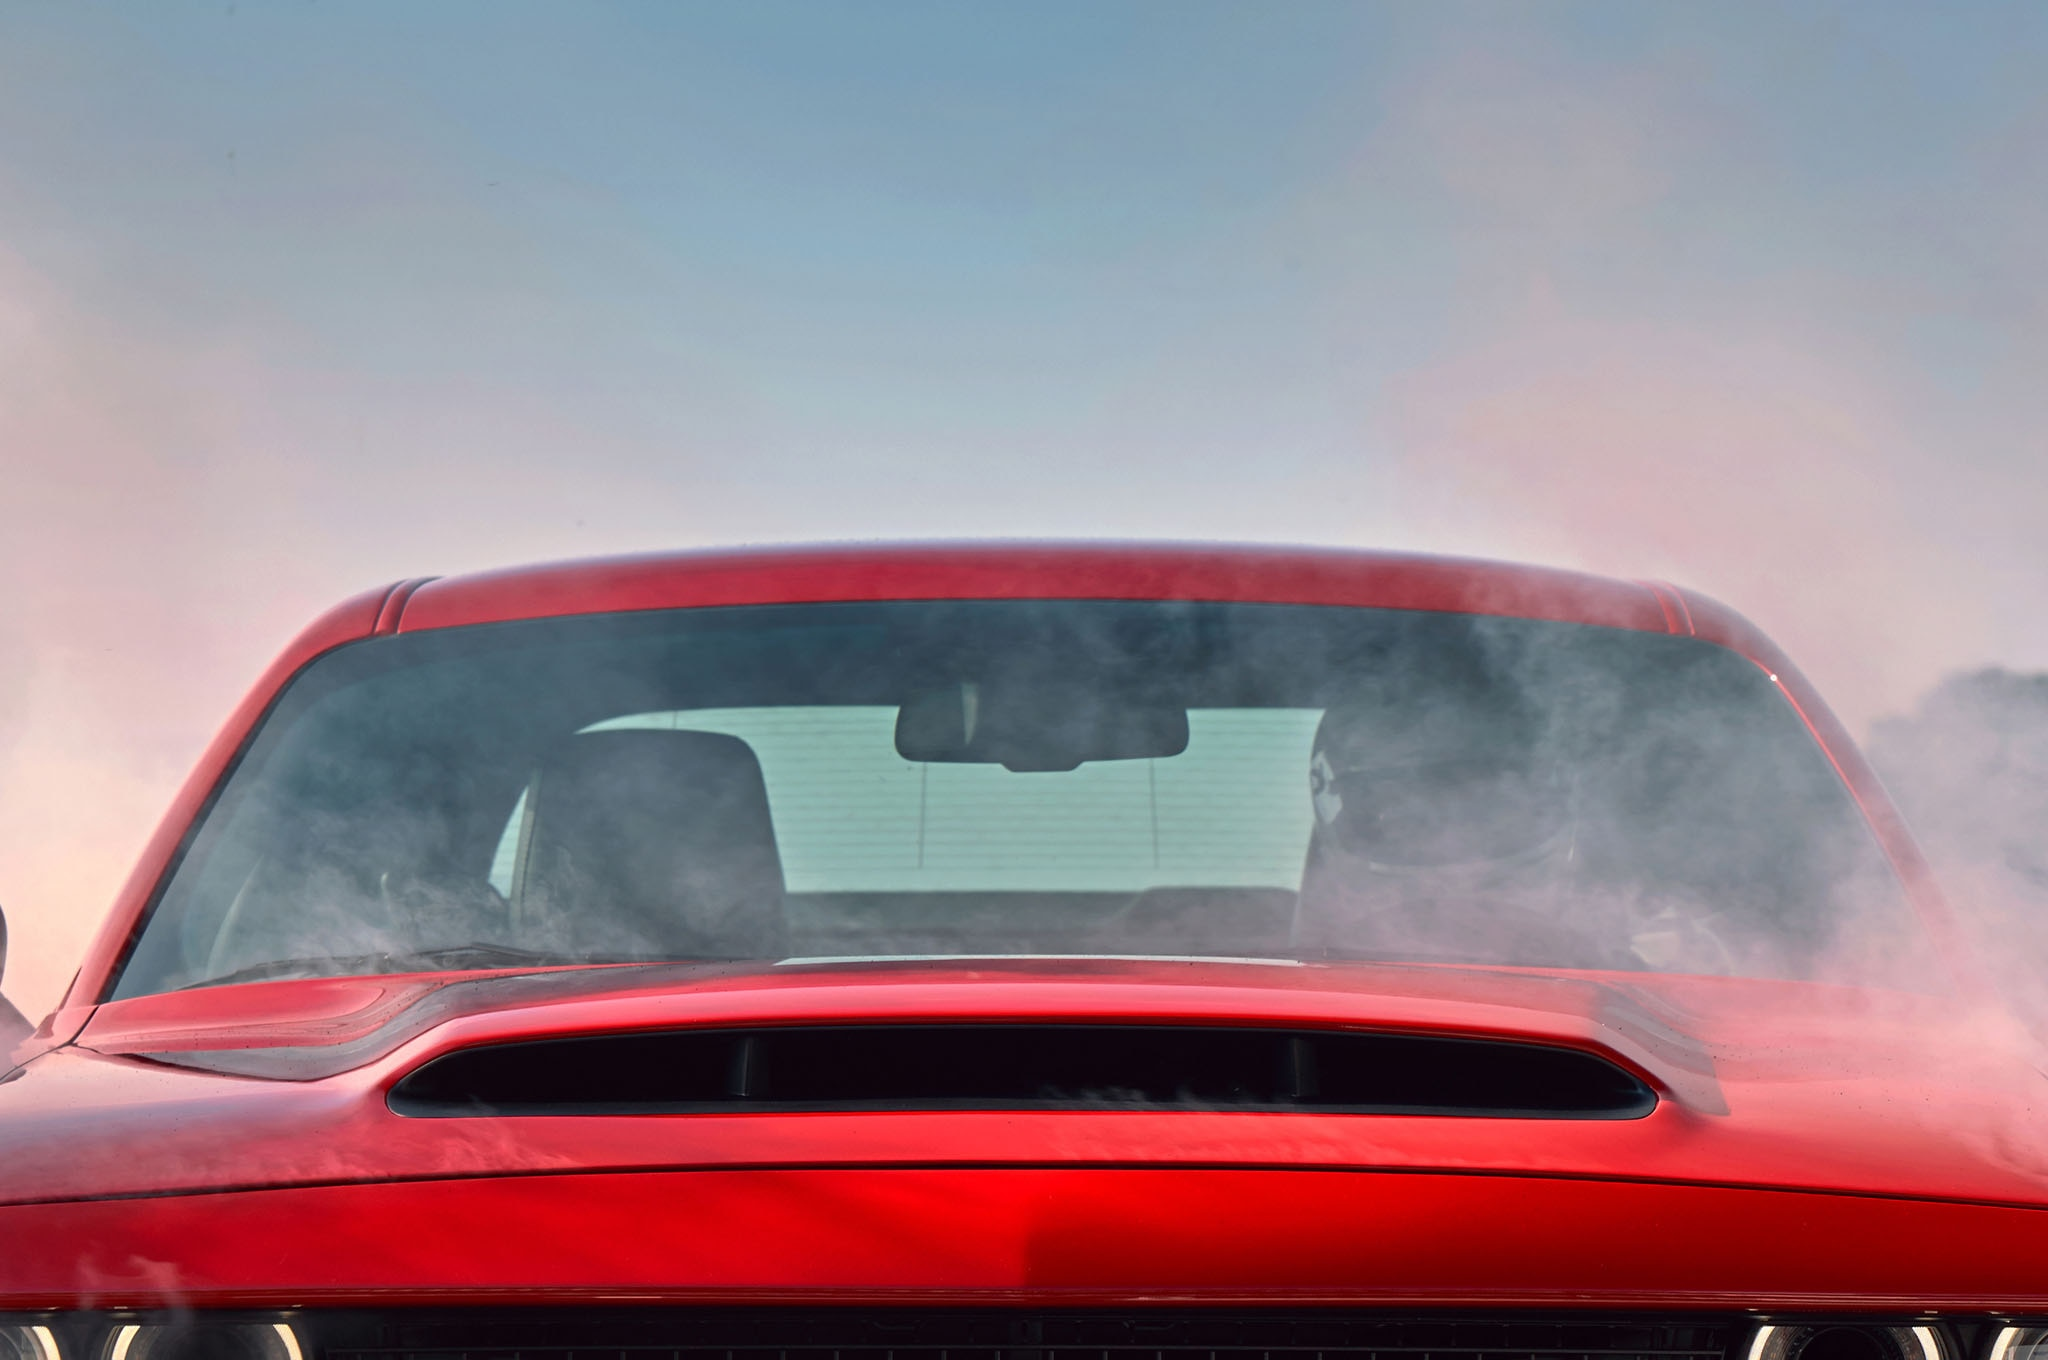 2018 Dodge Challenger Demon Teaser Air Intake Hood